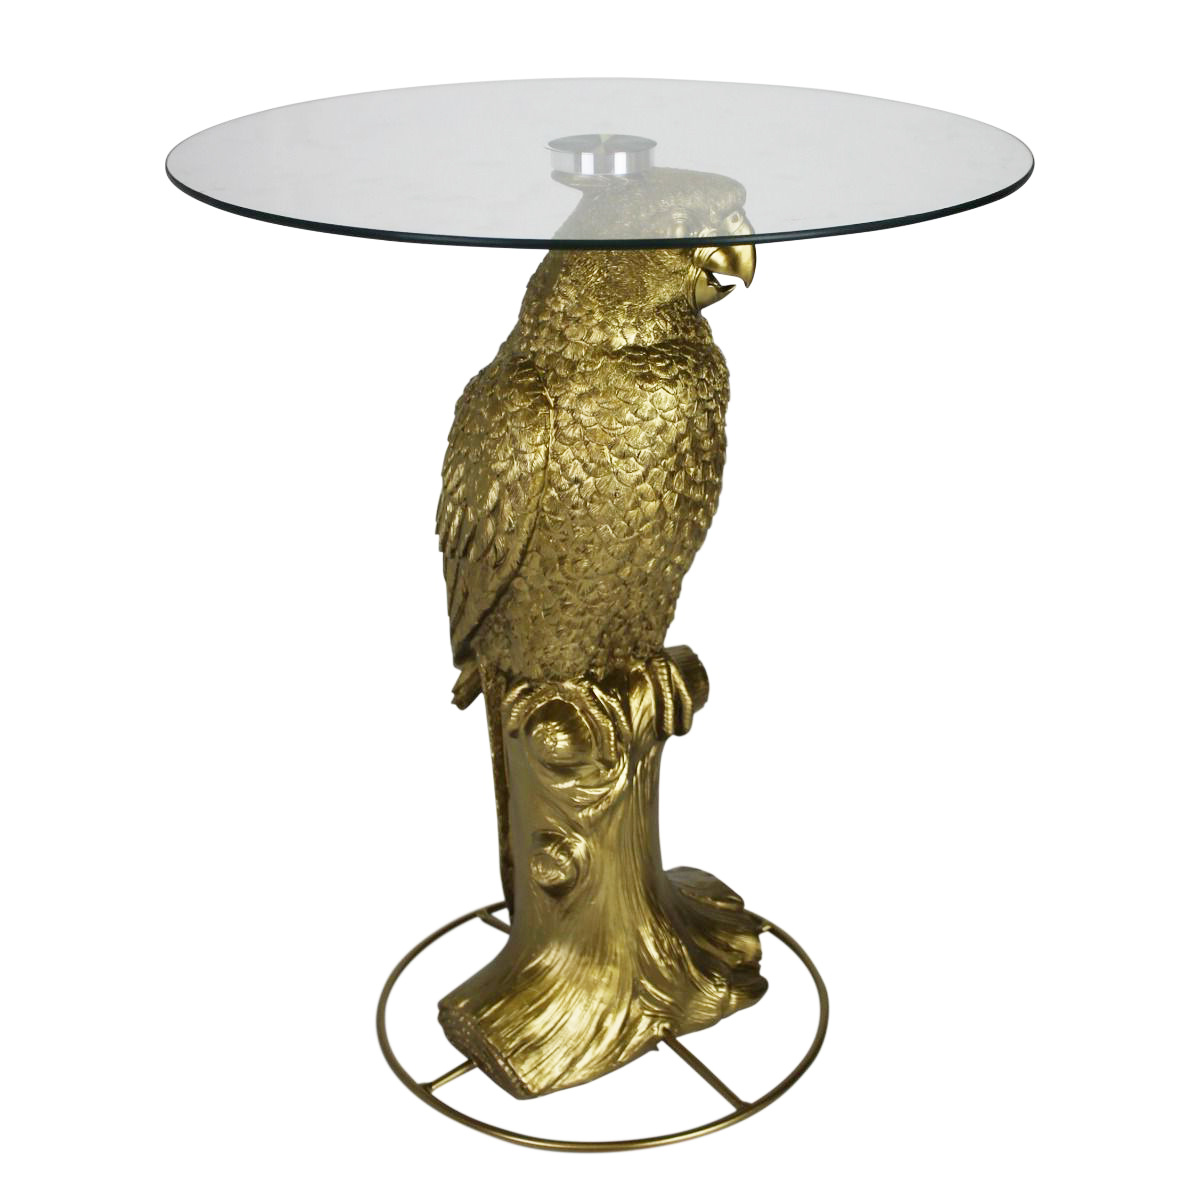 Store Without A Home Gold Parrot Table